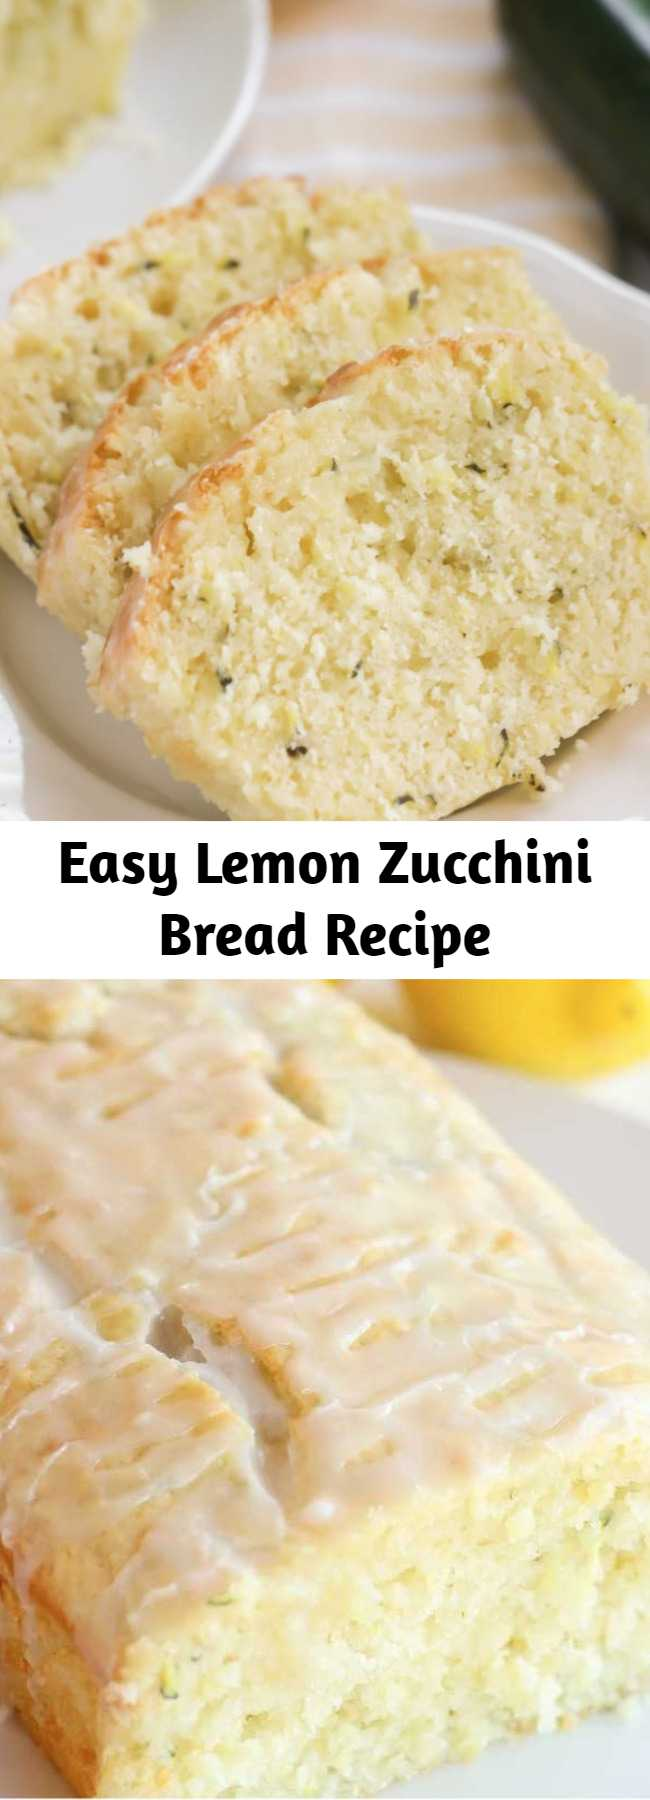 Easy Lemon Zucchini Bread Recipe - Delicious Glazed Lemon Zucchini Bread Recipe that is soft, moist, filled with grated zucchini and lemon juice and topped with a lemony glaze.